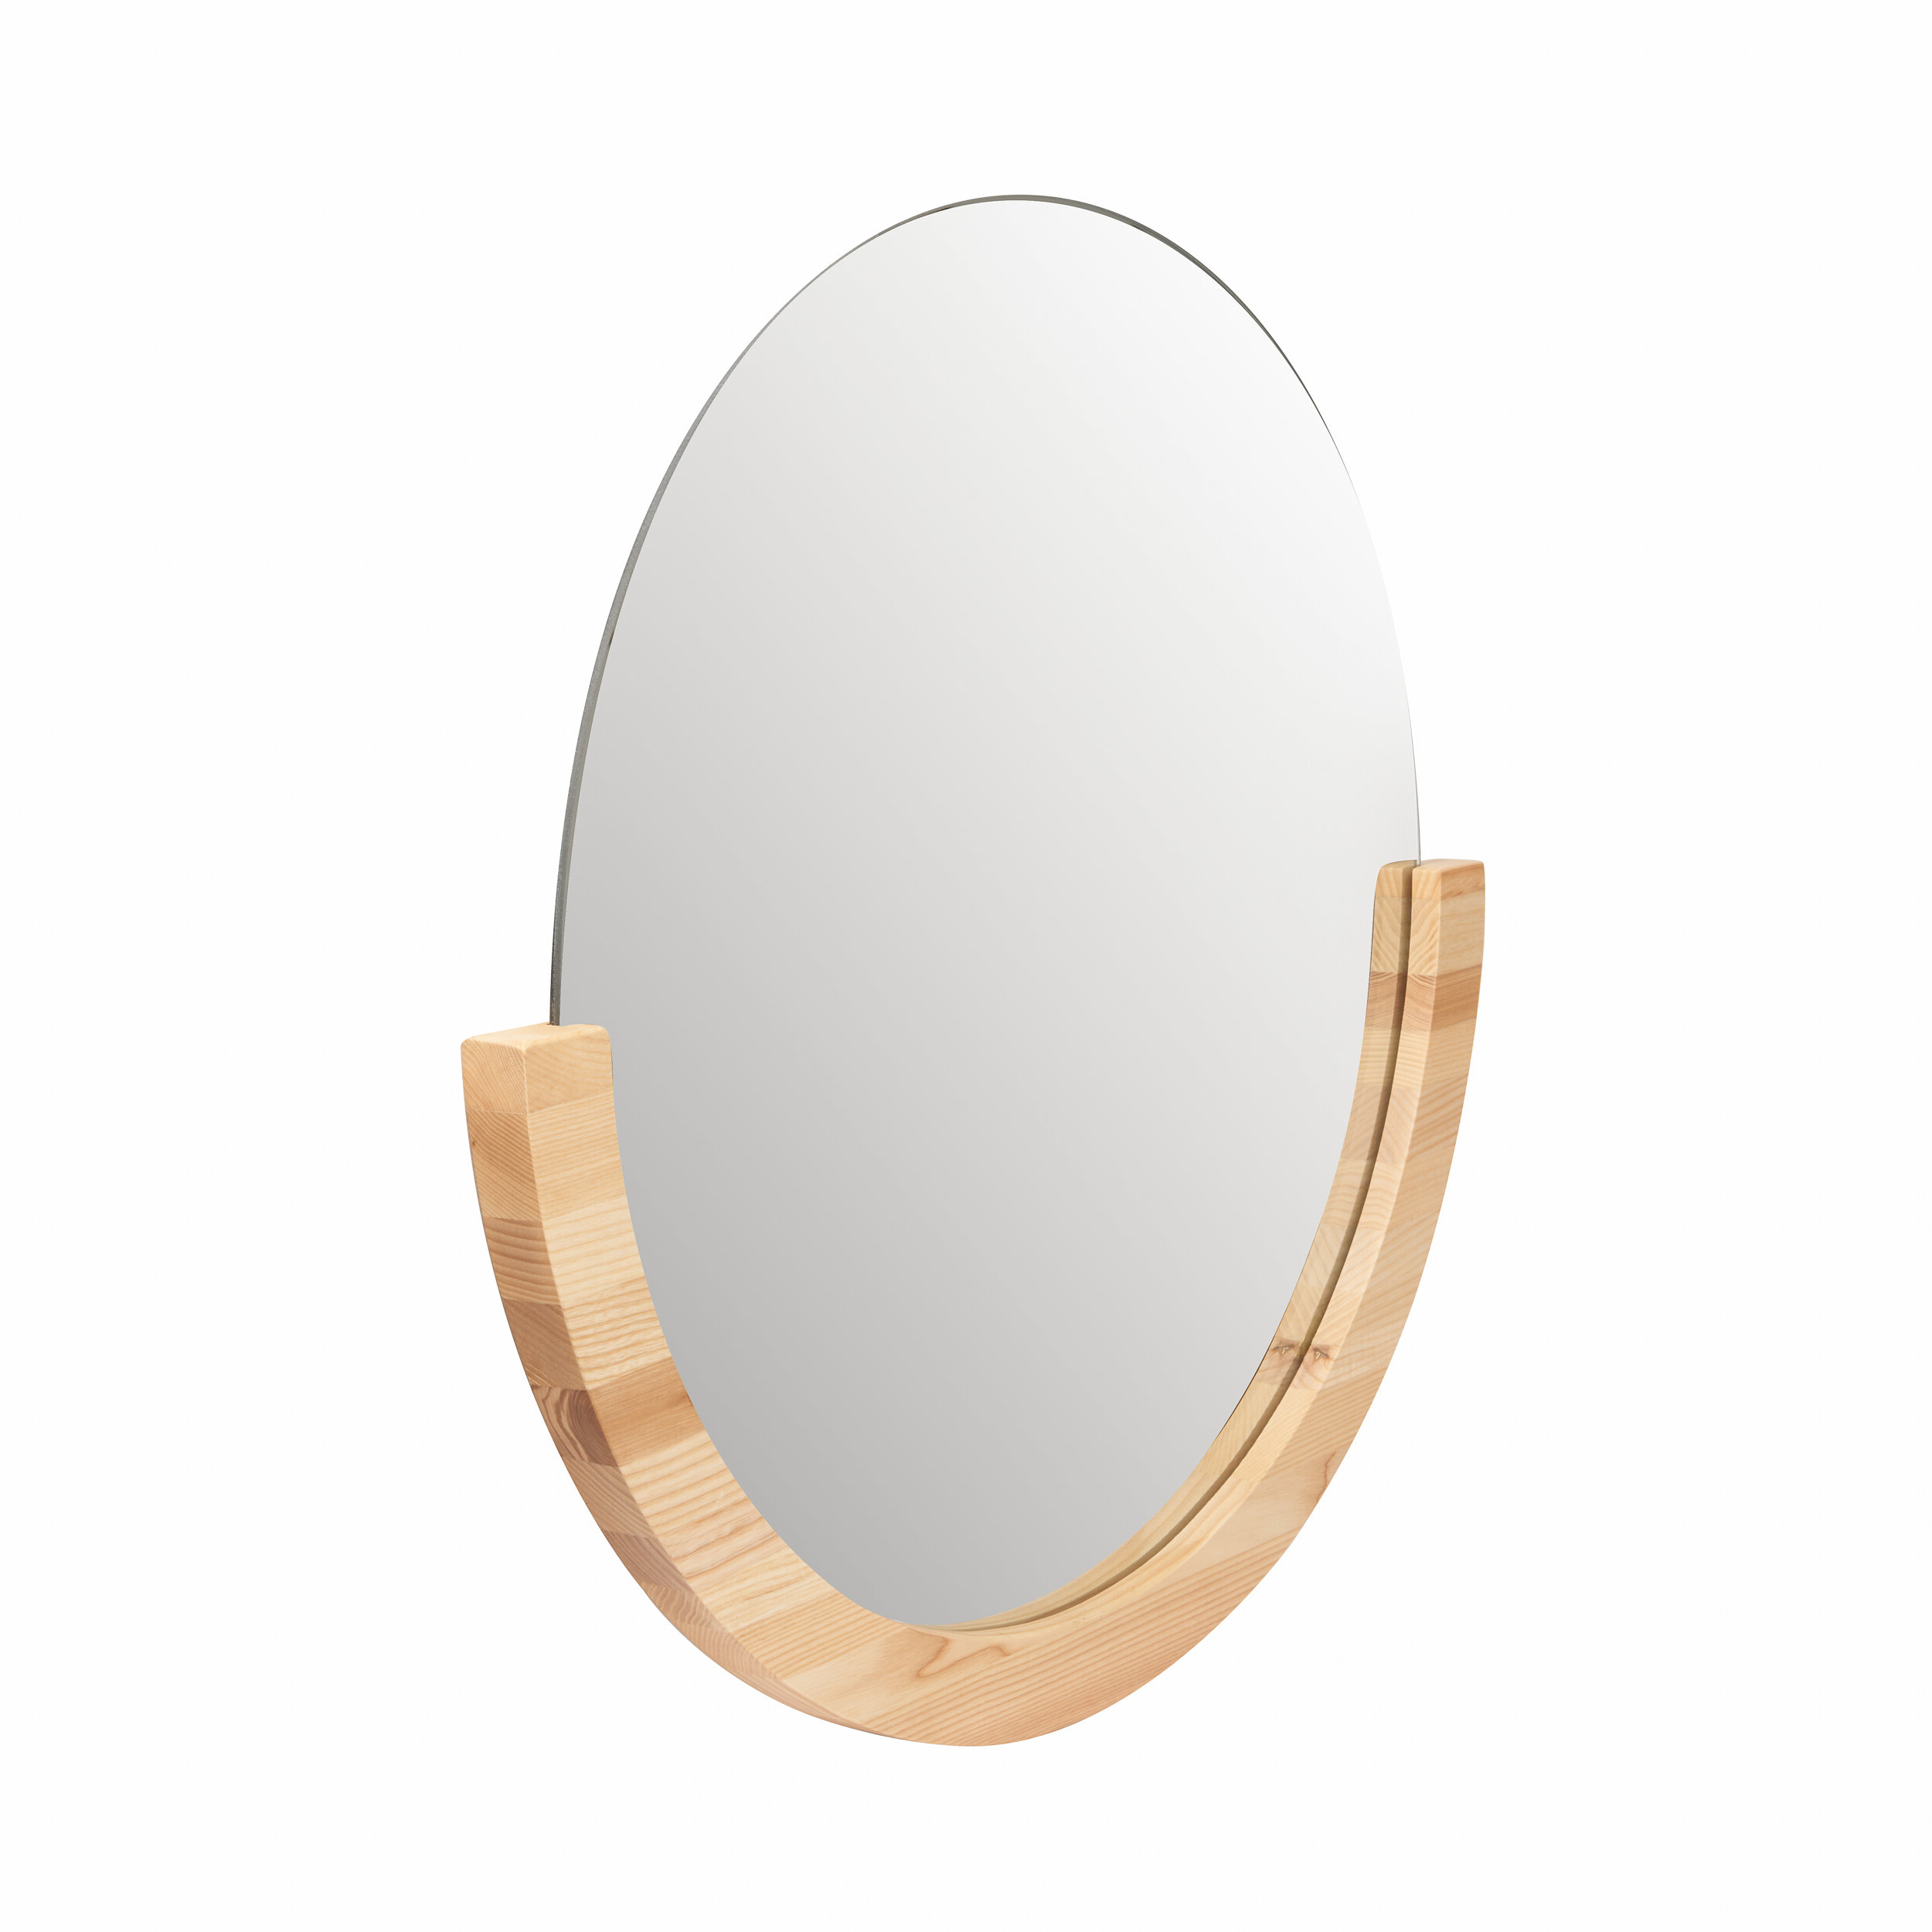 2020 Mira Accent Mirror With Loftis Modern & Contemporary Accent Wall Mirrors (Gallery 10 of 20)